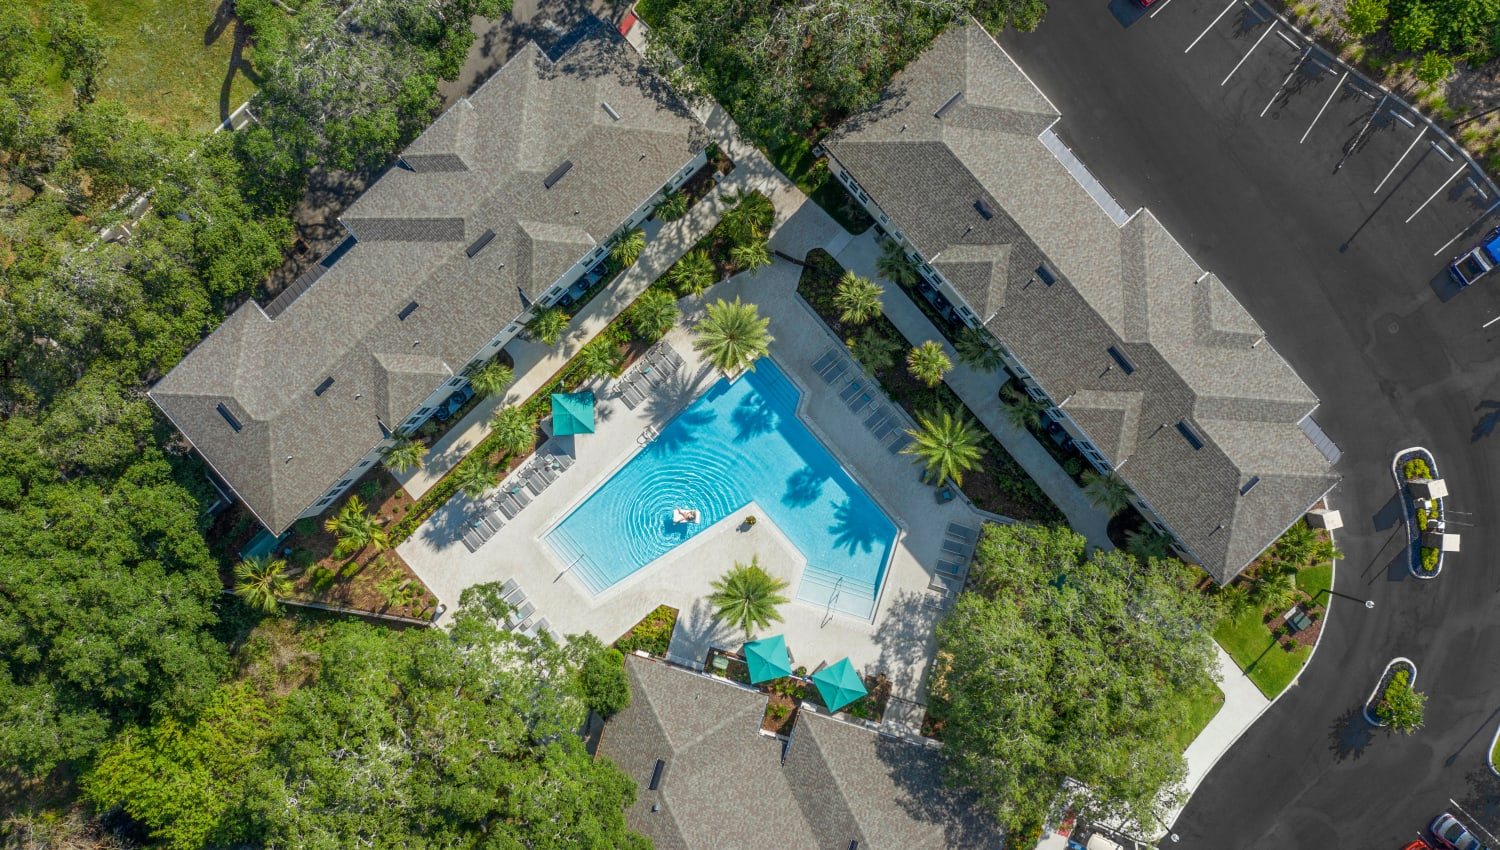 Aerial view of our pool and clubhouse buildings at Canopy at Citrus Park in Tampa, Florida